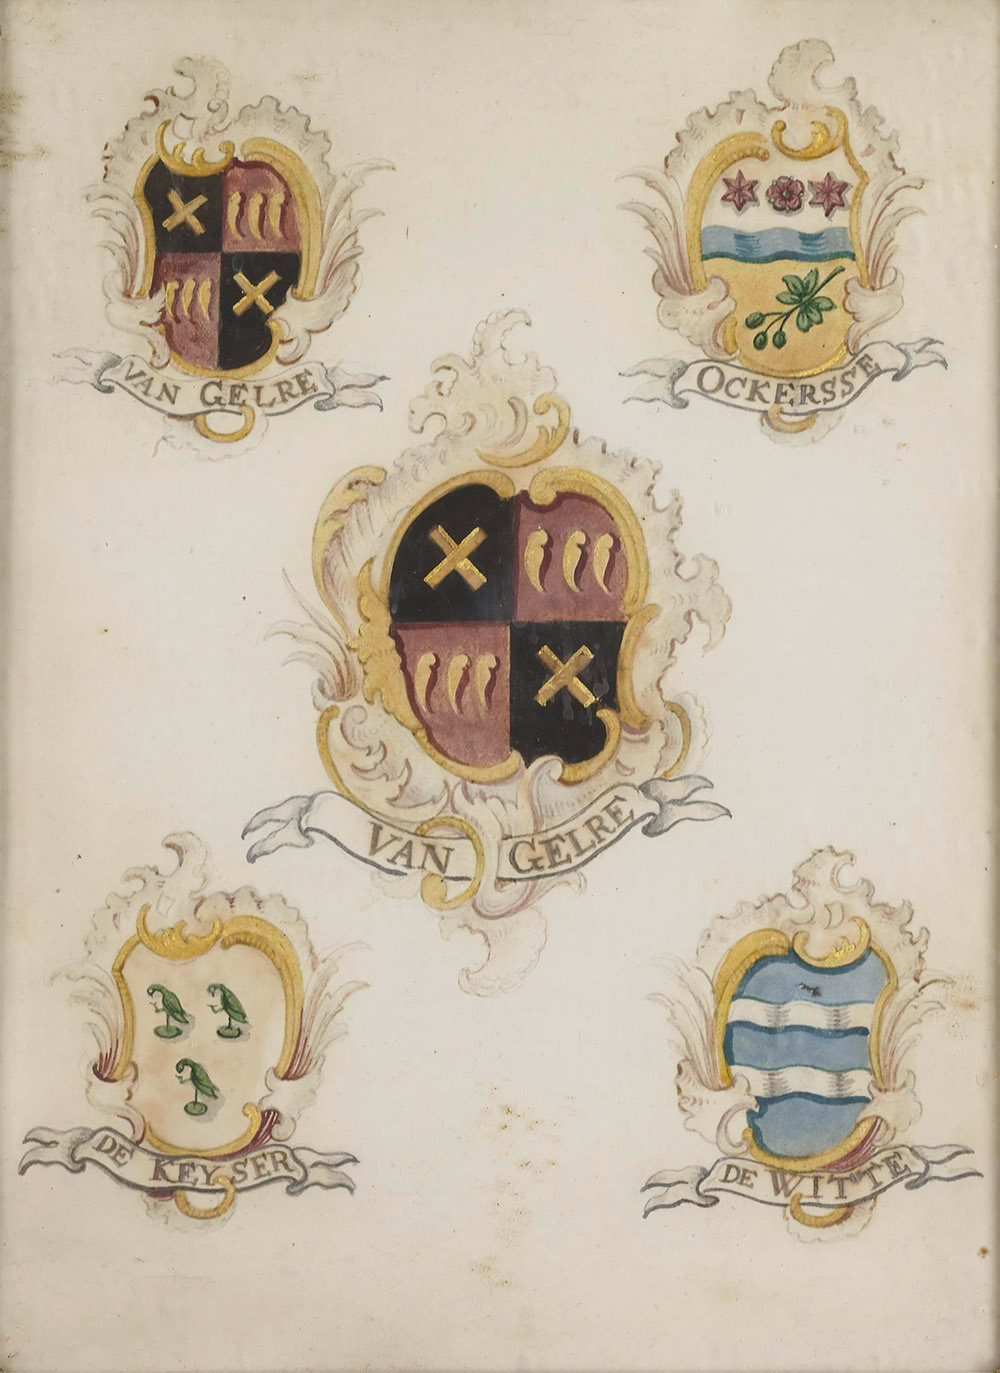 family crests from the Netherlands